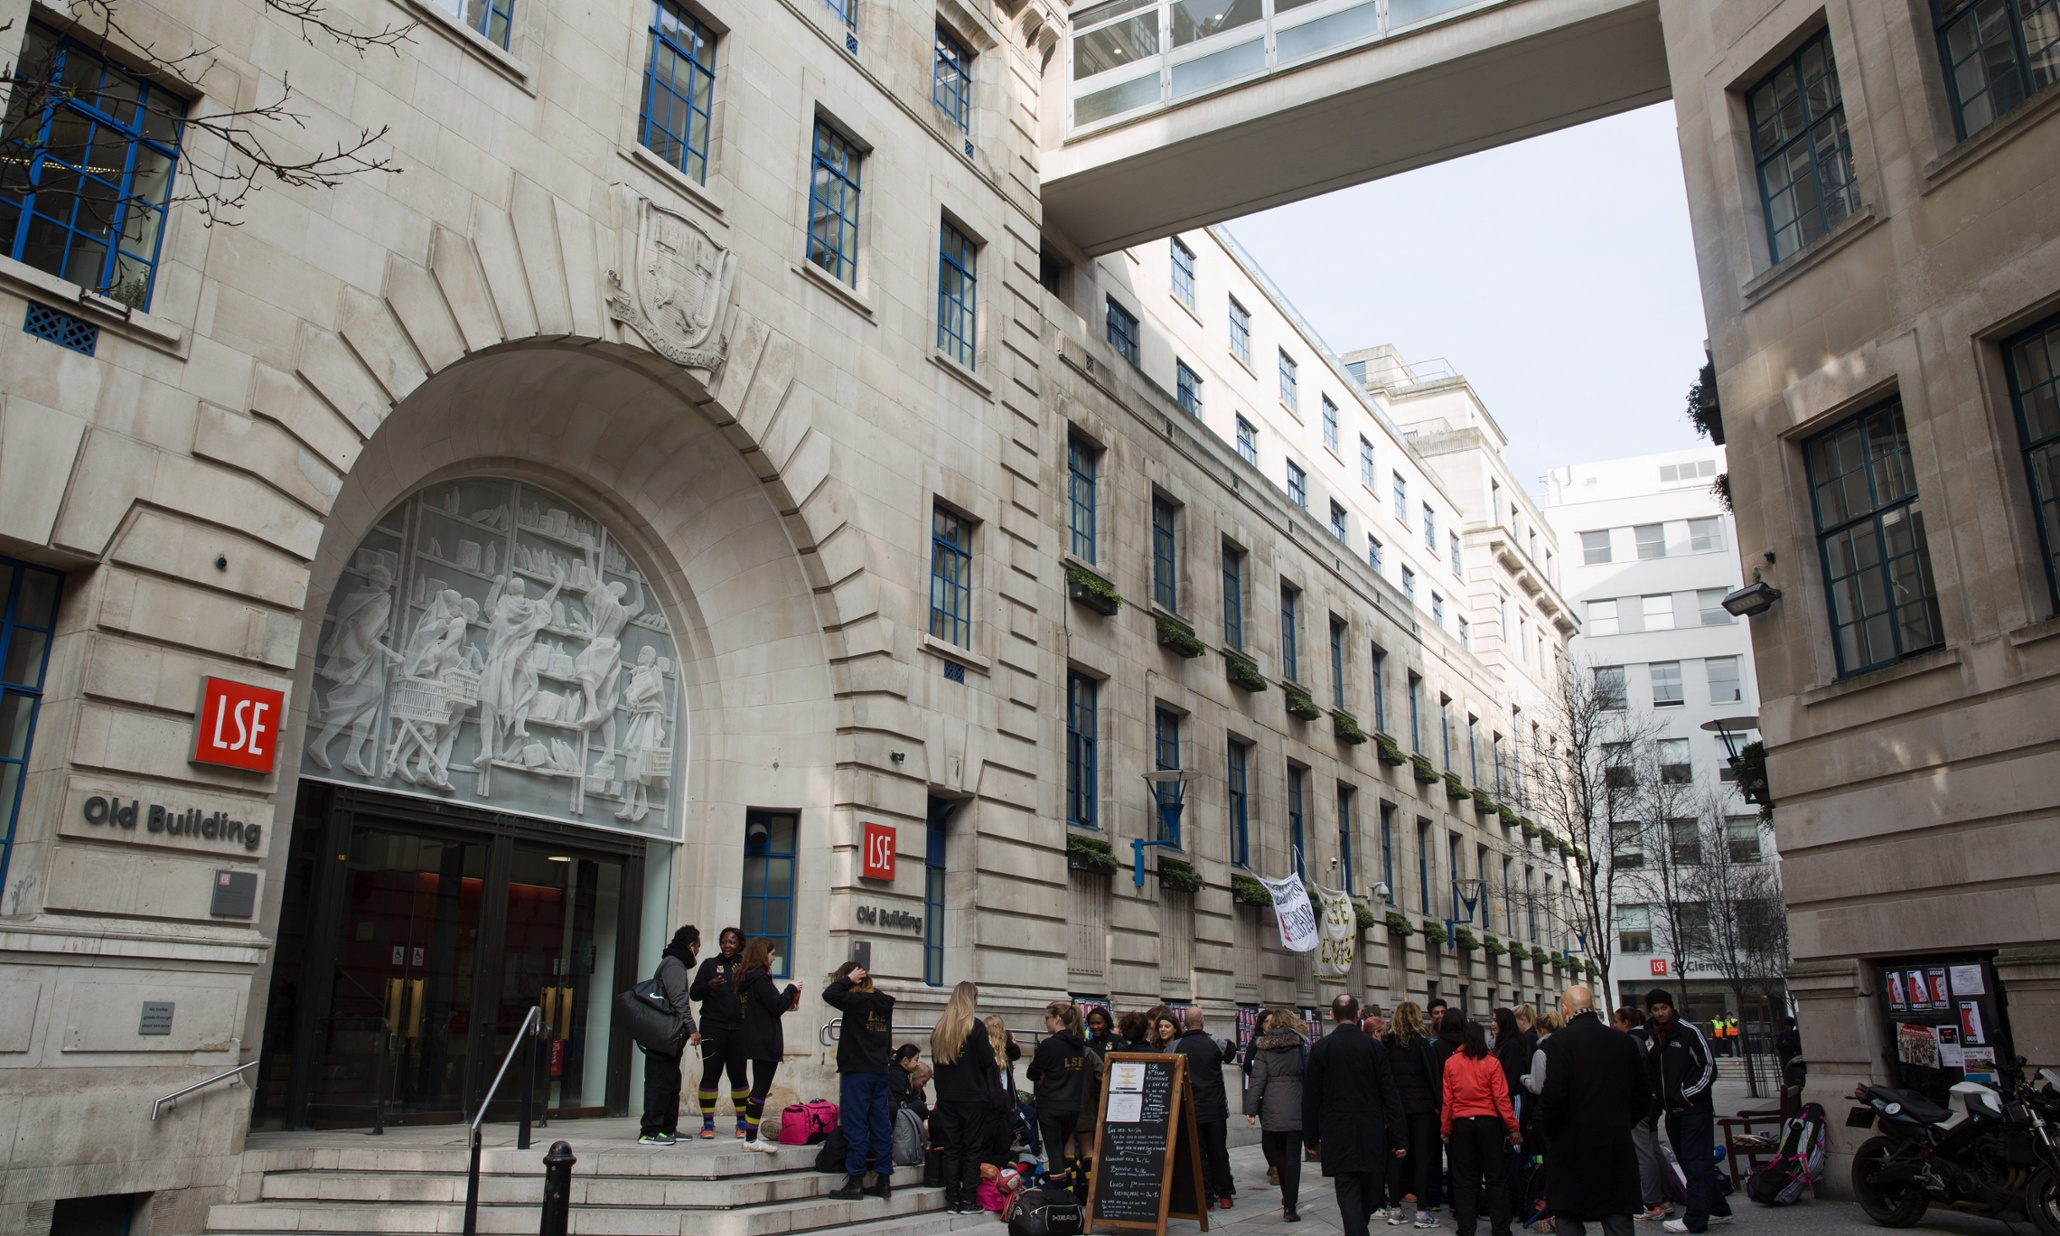 THE crime scene - The London School of Economics is located in the City of Westminster. Admission is highly competitive, and alumni include George Soros, David Rockefeller, 18 Nobel Prize winners, 53 past/present heads of state, and 46 current Lords of Parliament. No other university outside of the U.S. and India has educated more billionaires.